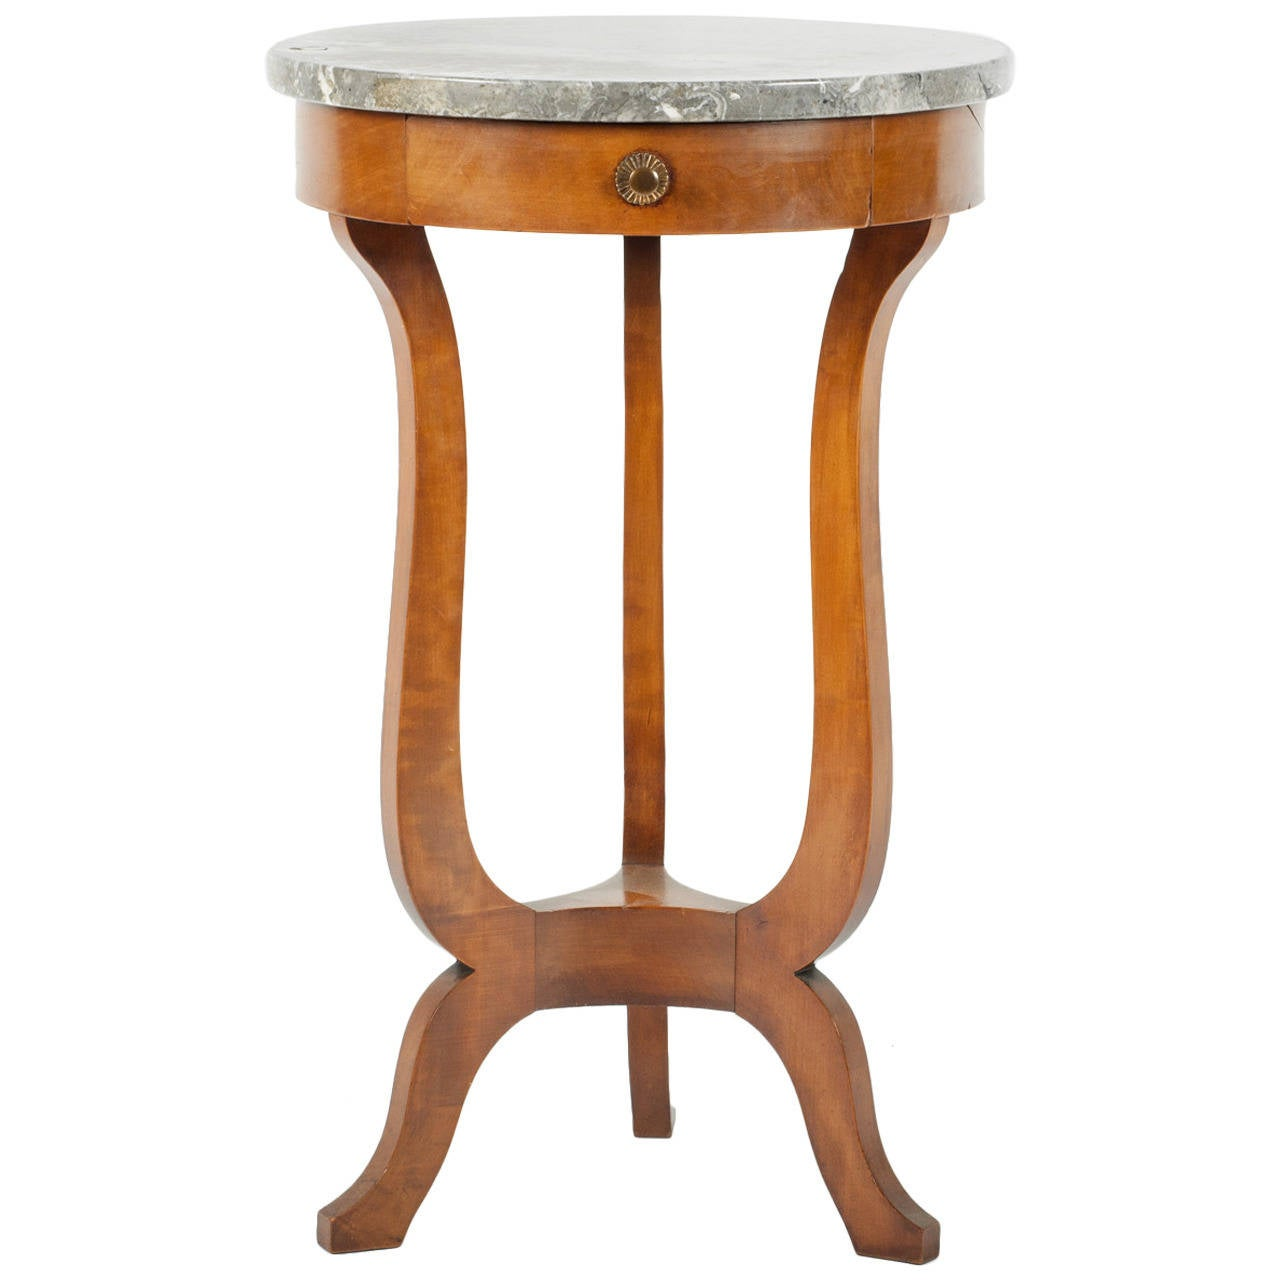 This antique french cherry side table is no longer available - Antique French Marble Top Table At 1stdibs